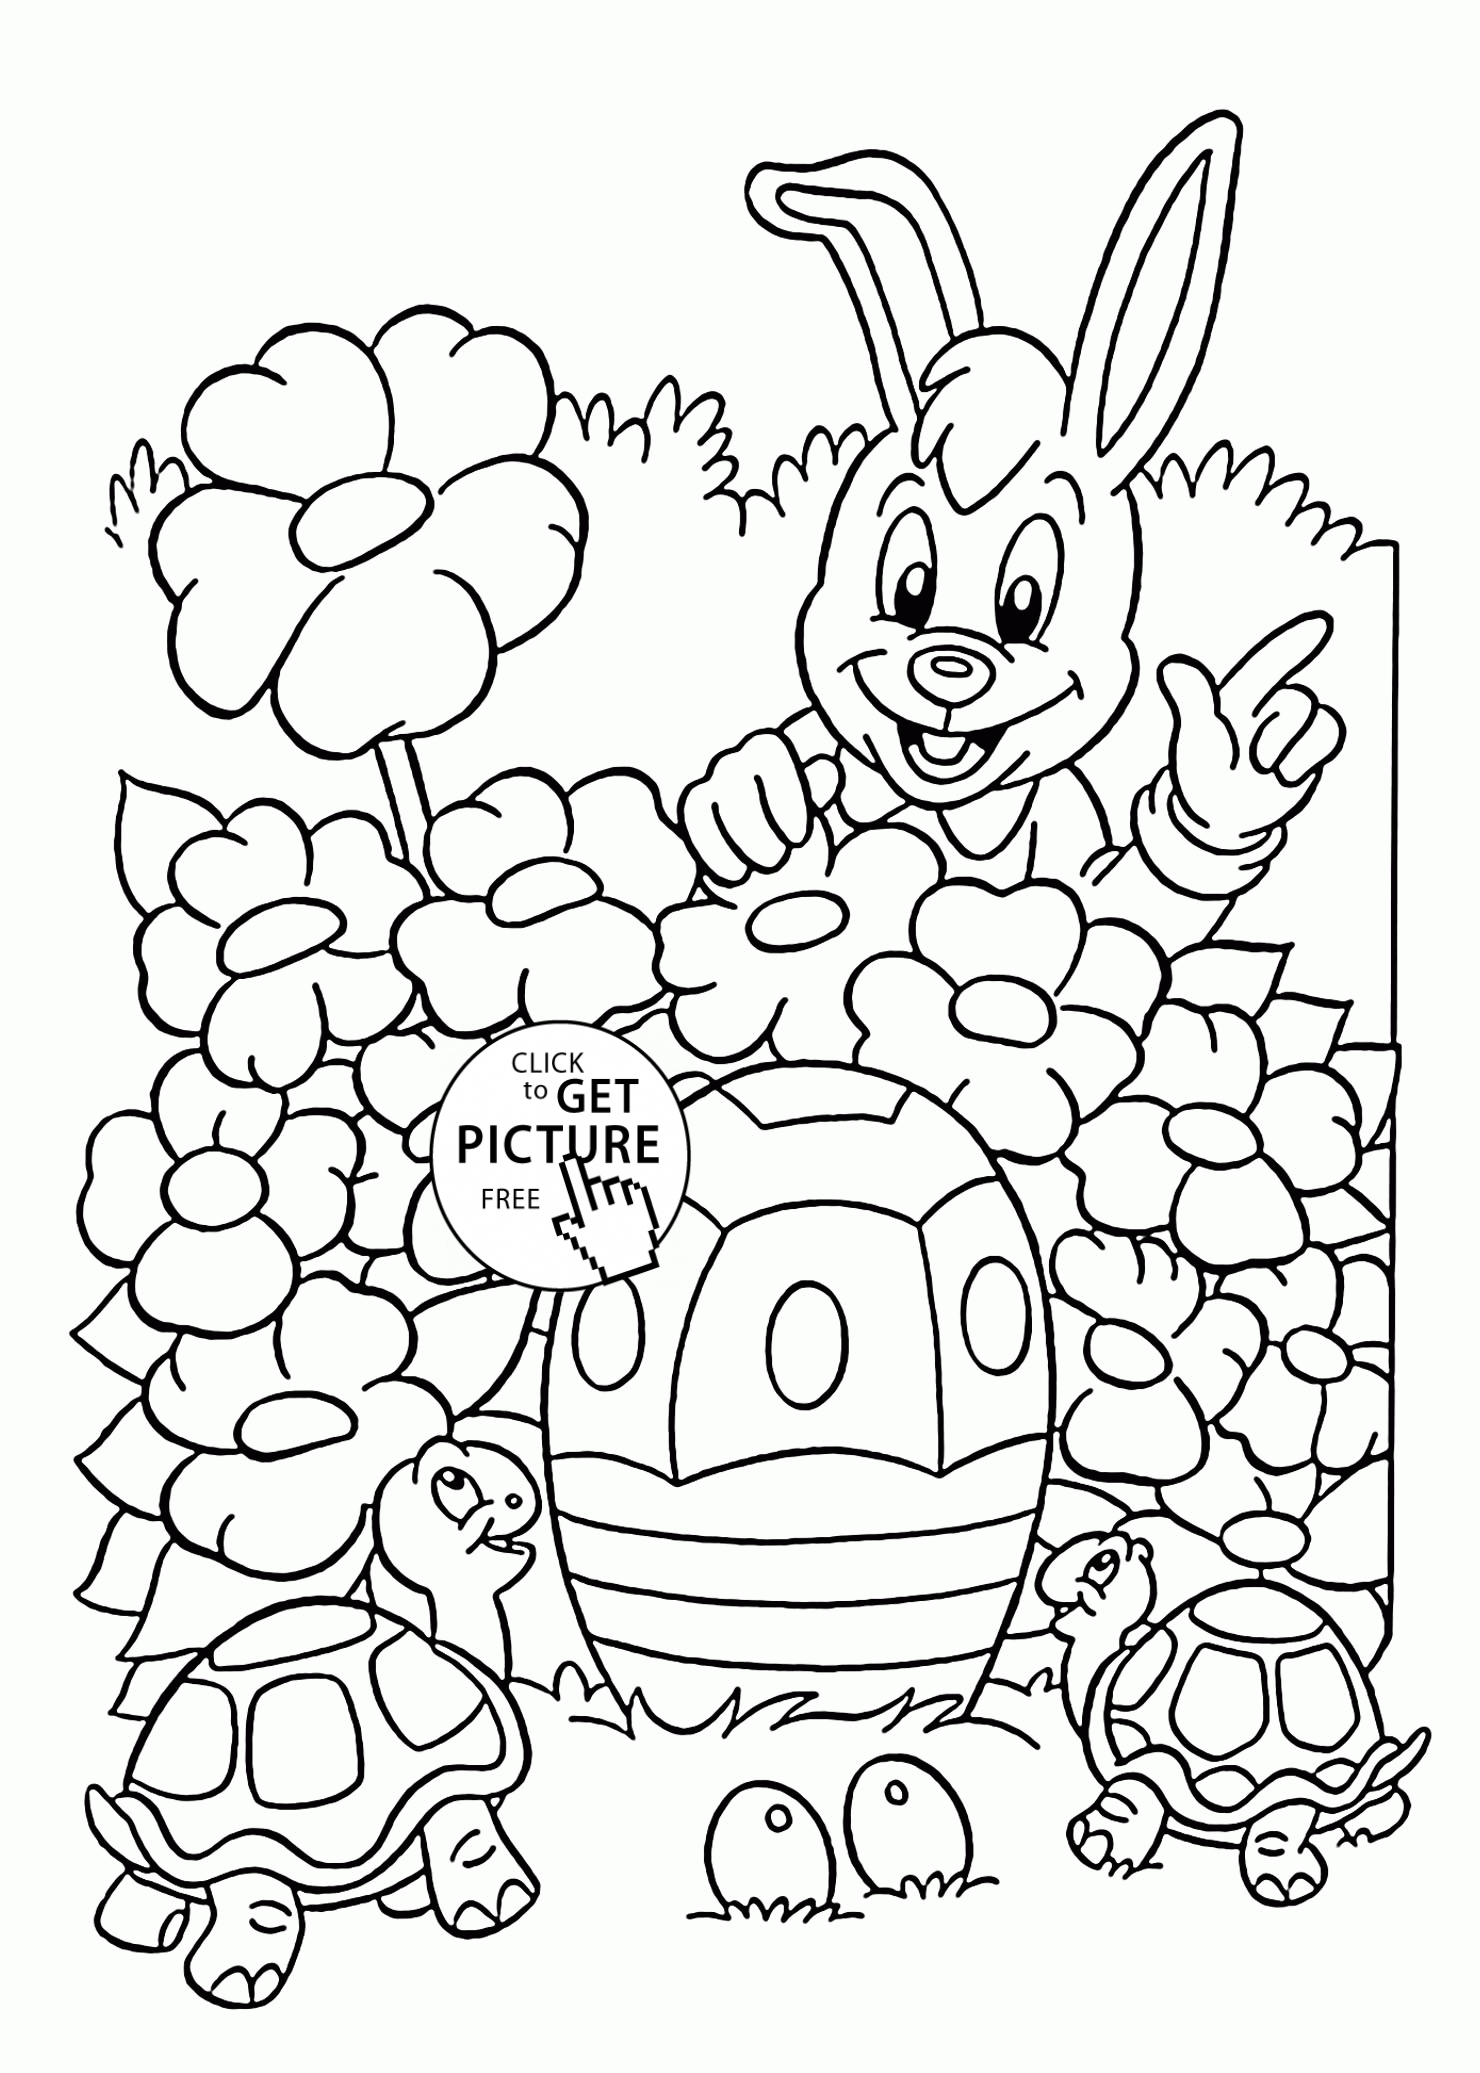 easter bunny coloring pages - easter bunny and turtles coloring page for kids coloring pages printables free